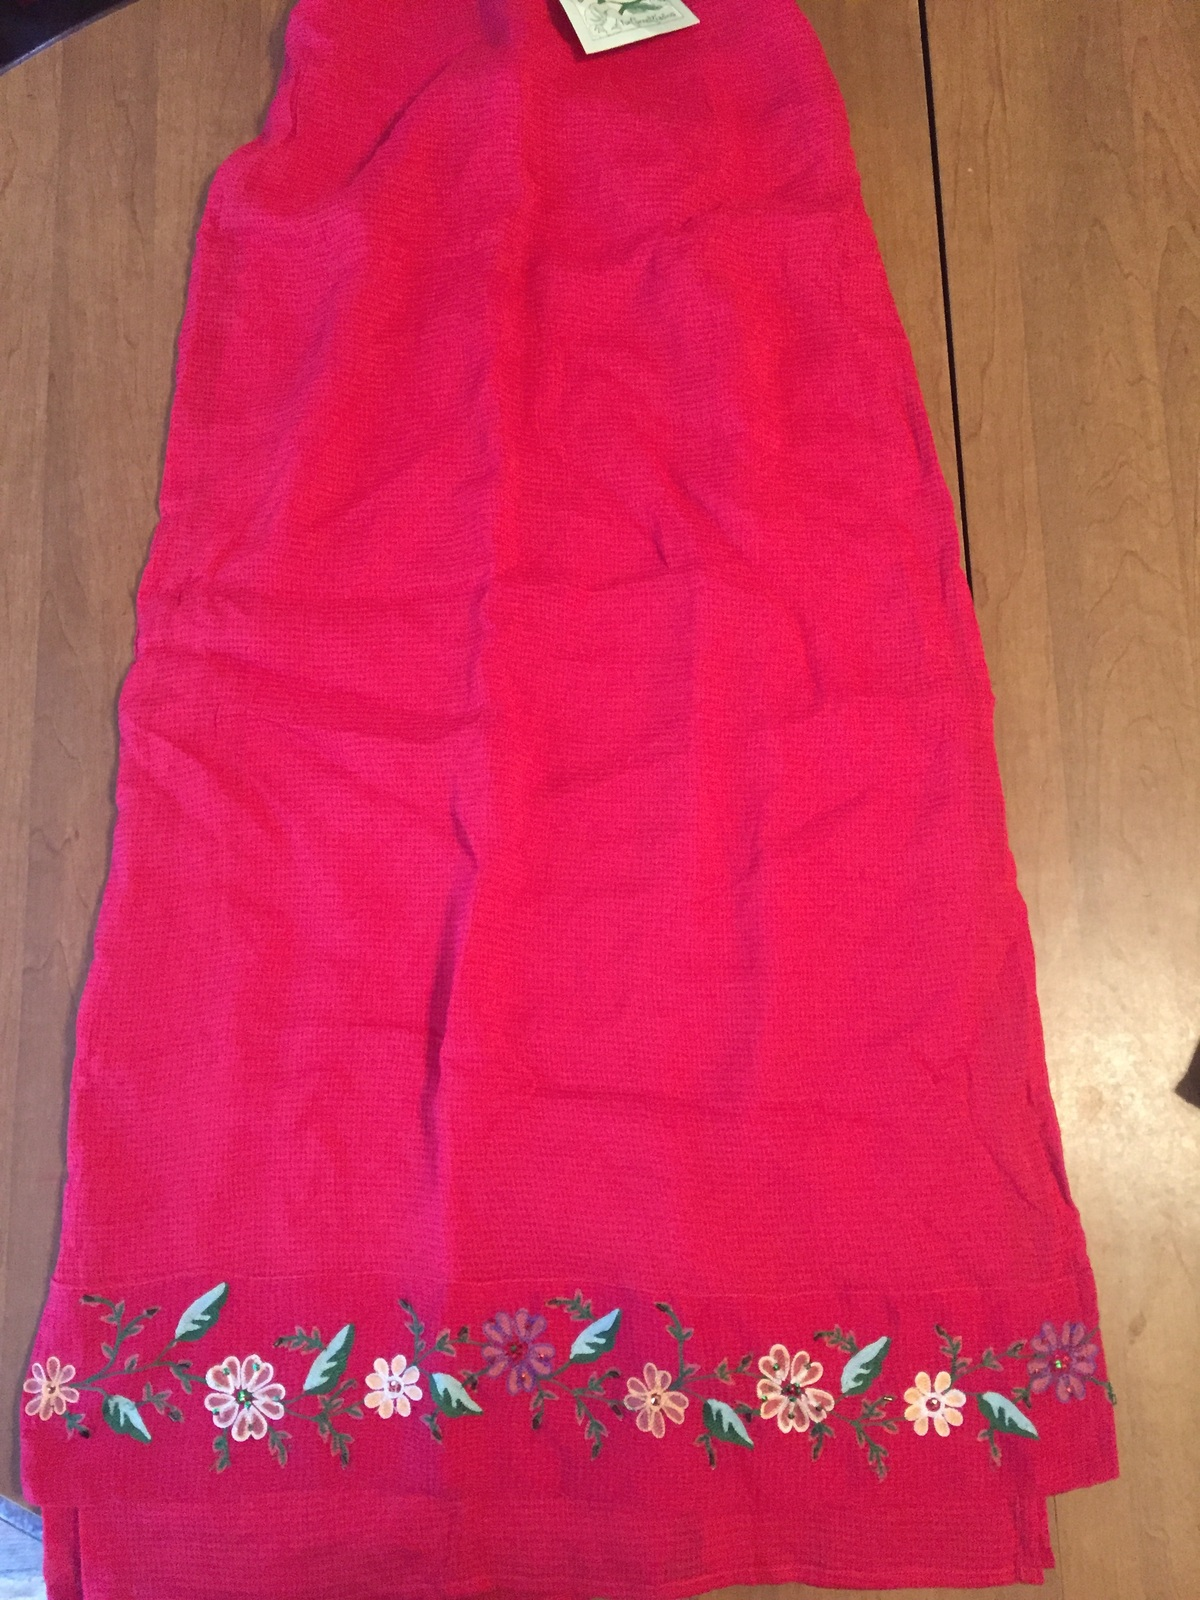 Women's red size s April Cornell rm268/sec